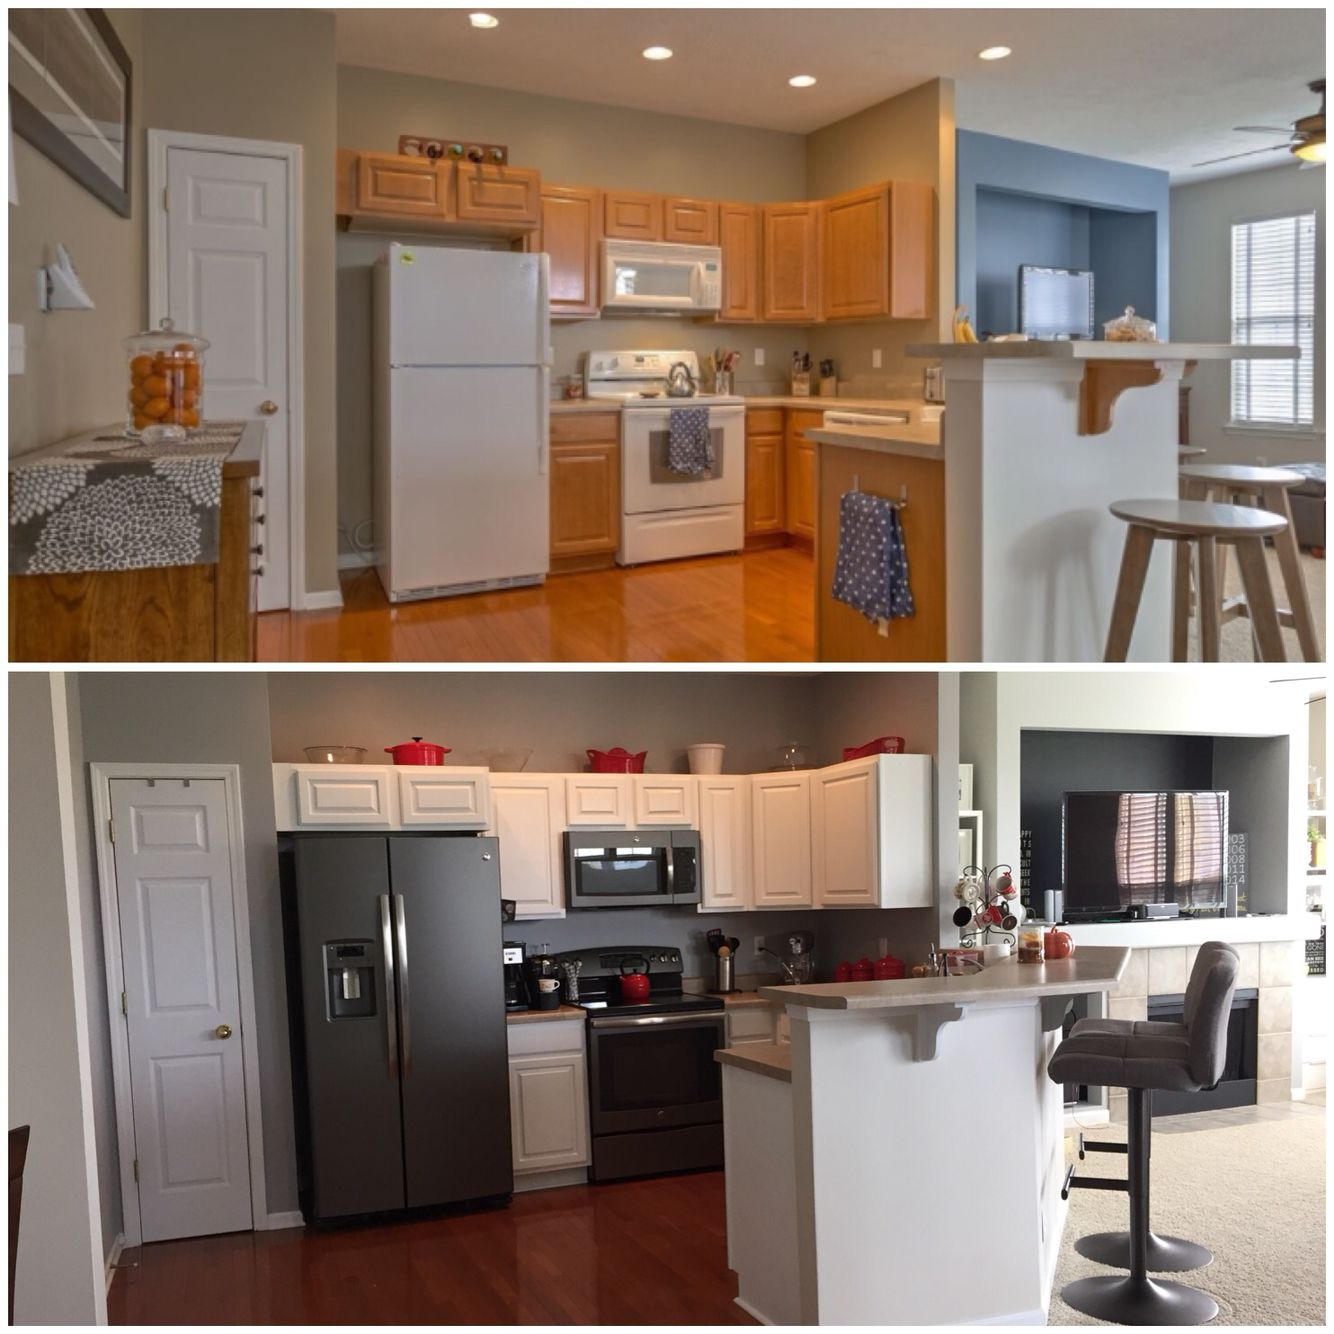 Grey Kitchen Cabinets And White Appliances: Before & After Oak Cabinets To White Cabinets White Appliances To The New Slate Gray Appliances